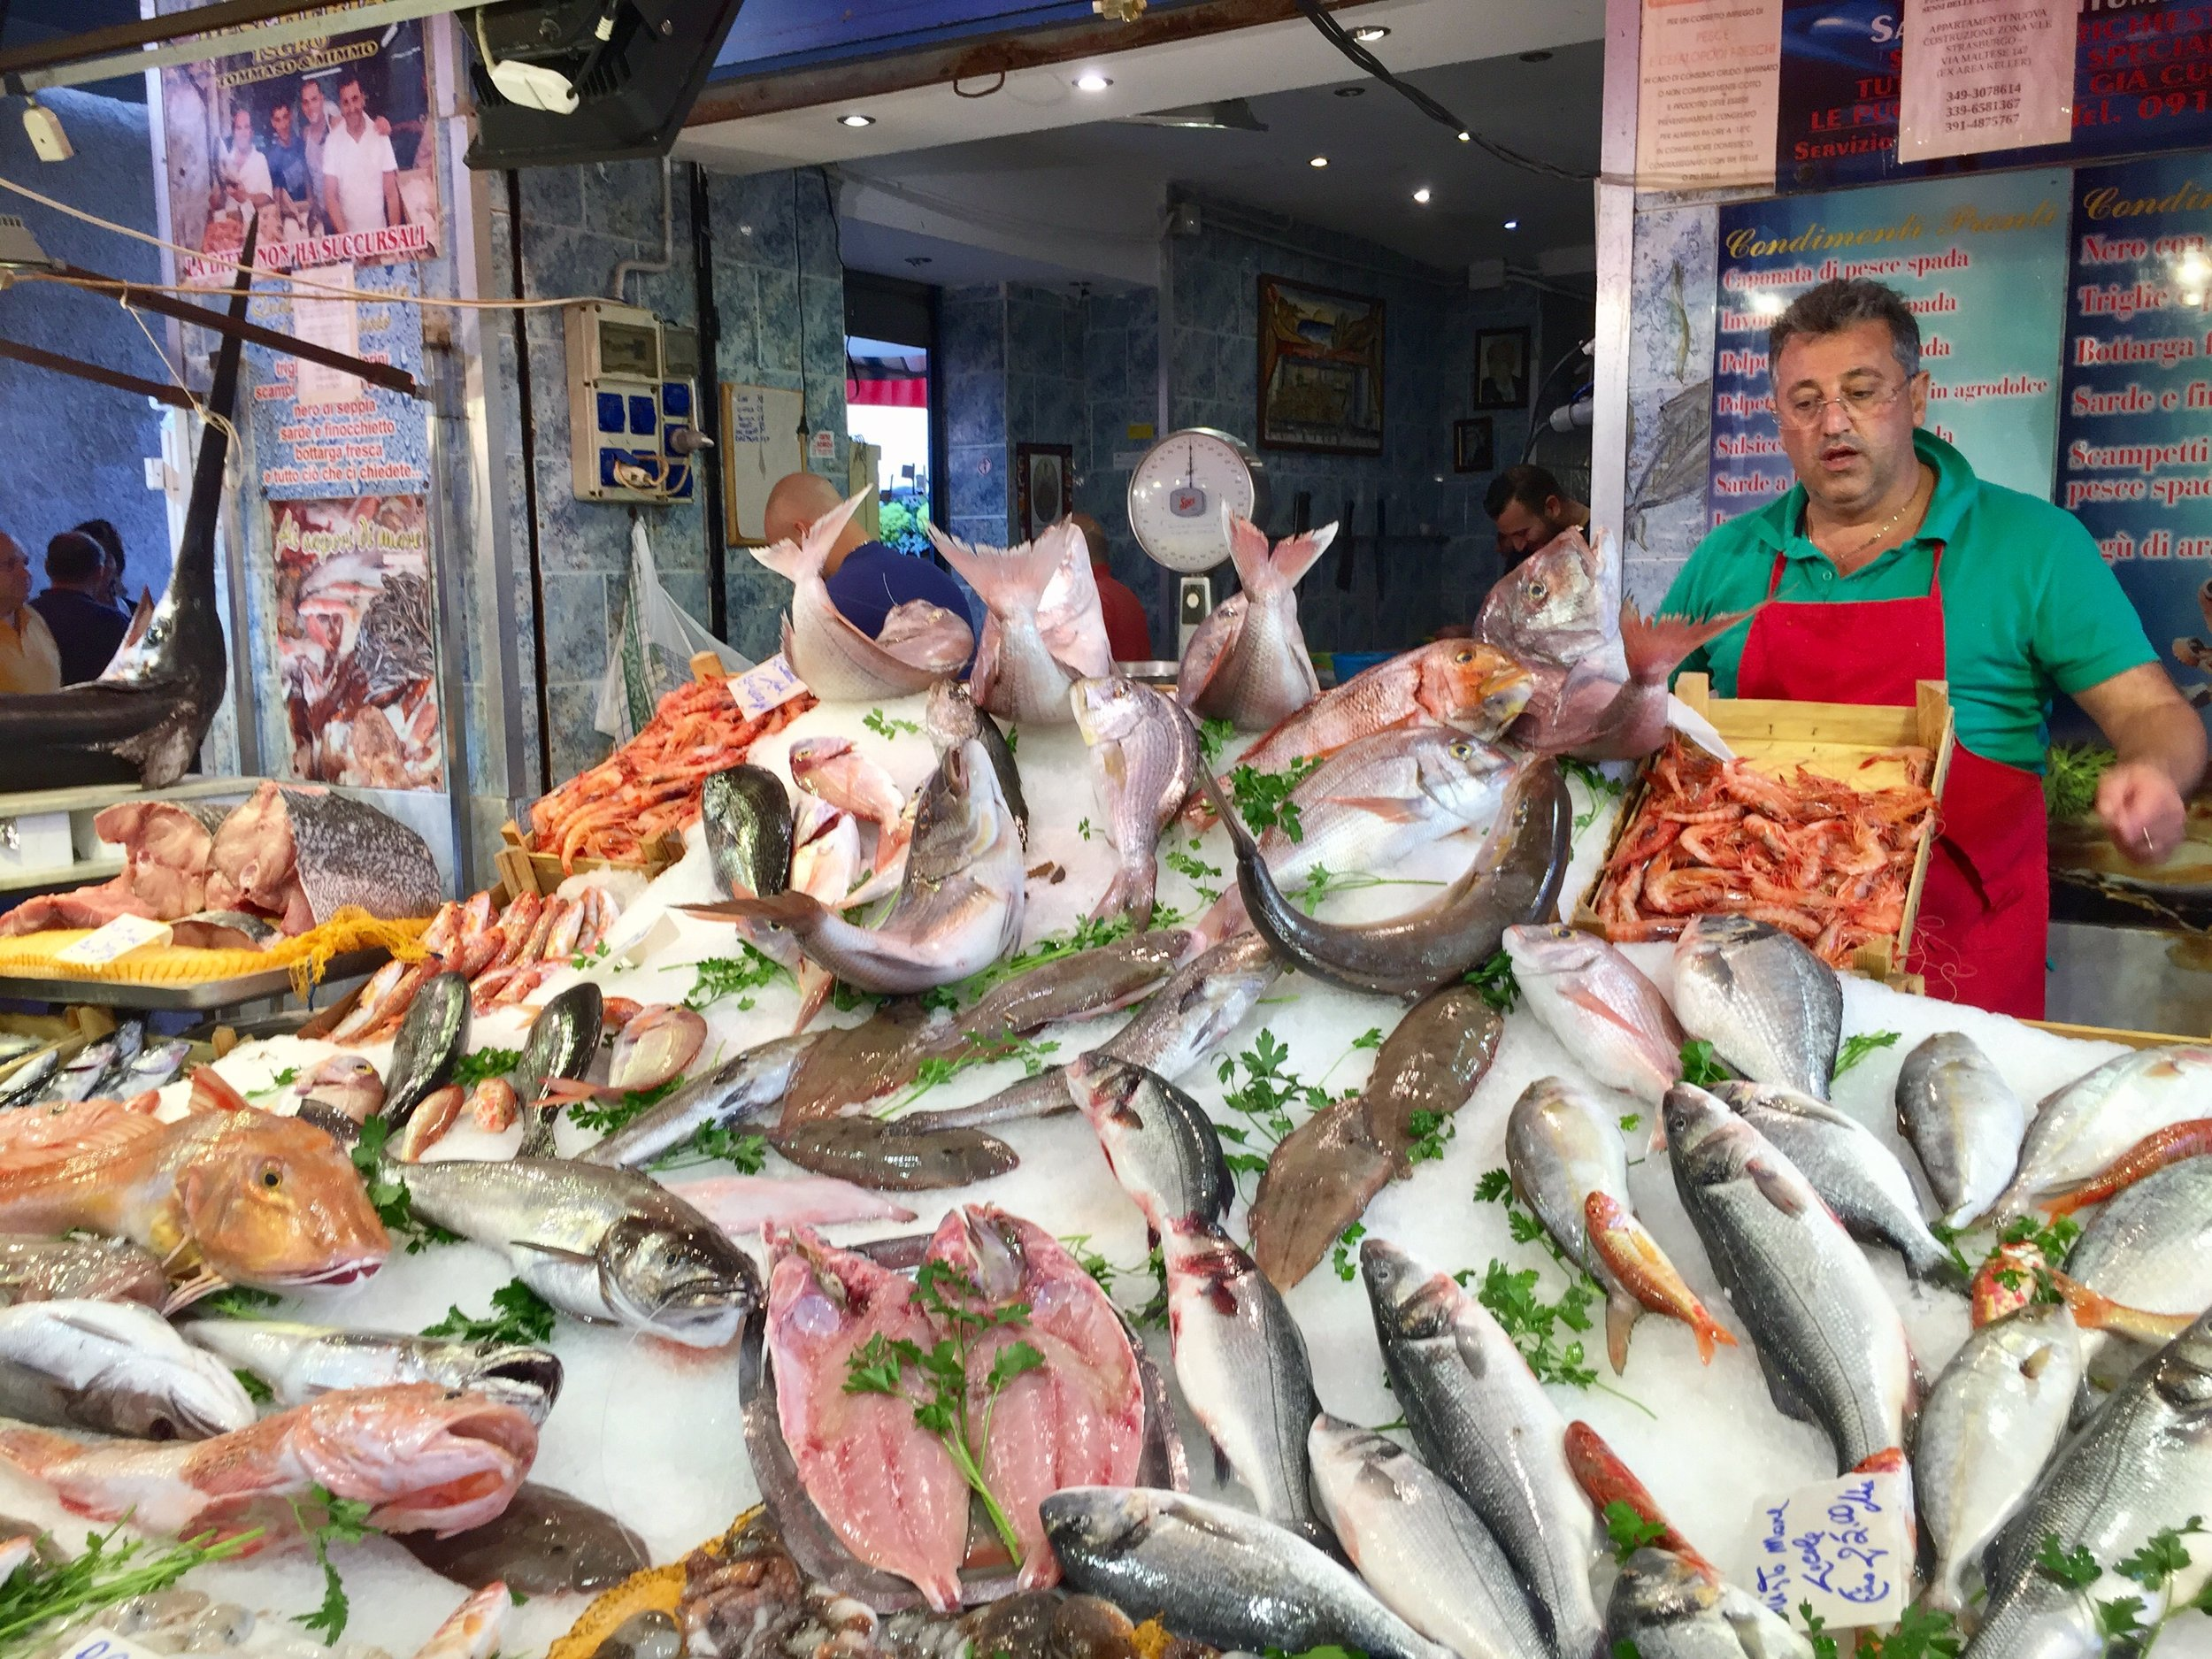 The Sicilians take their markets very seriously - check out the daily catch at the Capo in Palermo! I fell in love with their fresh grilled calamari